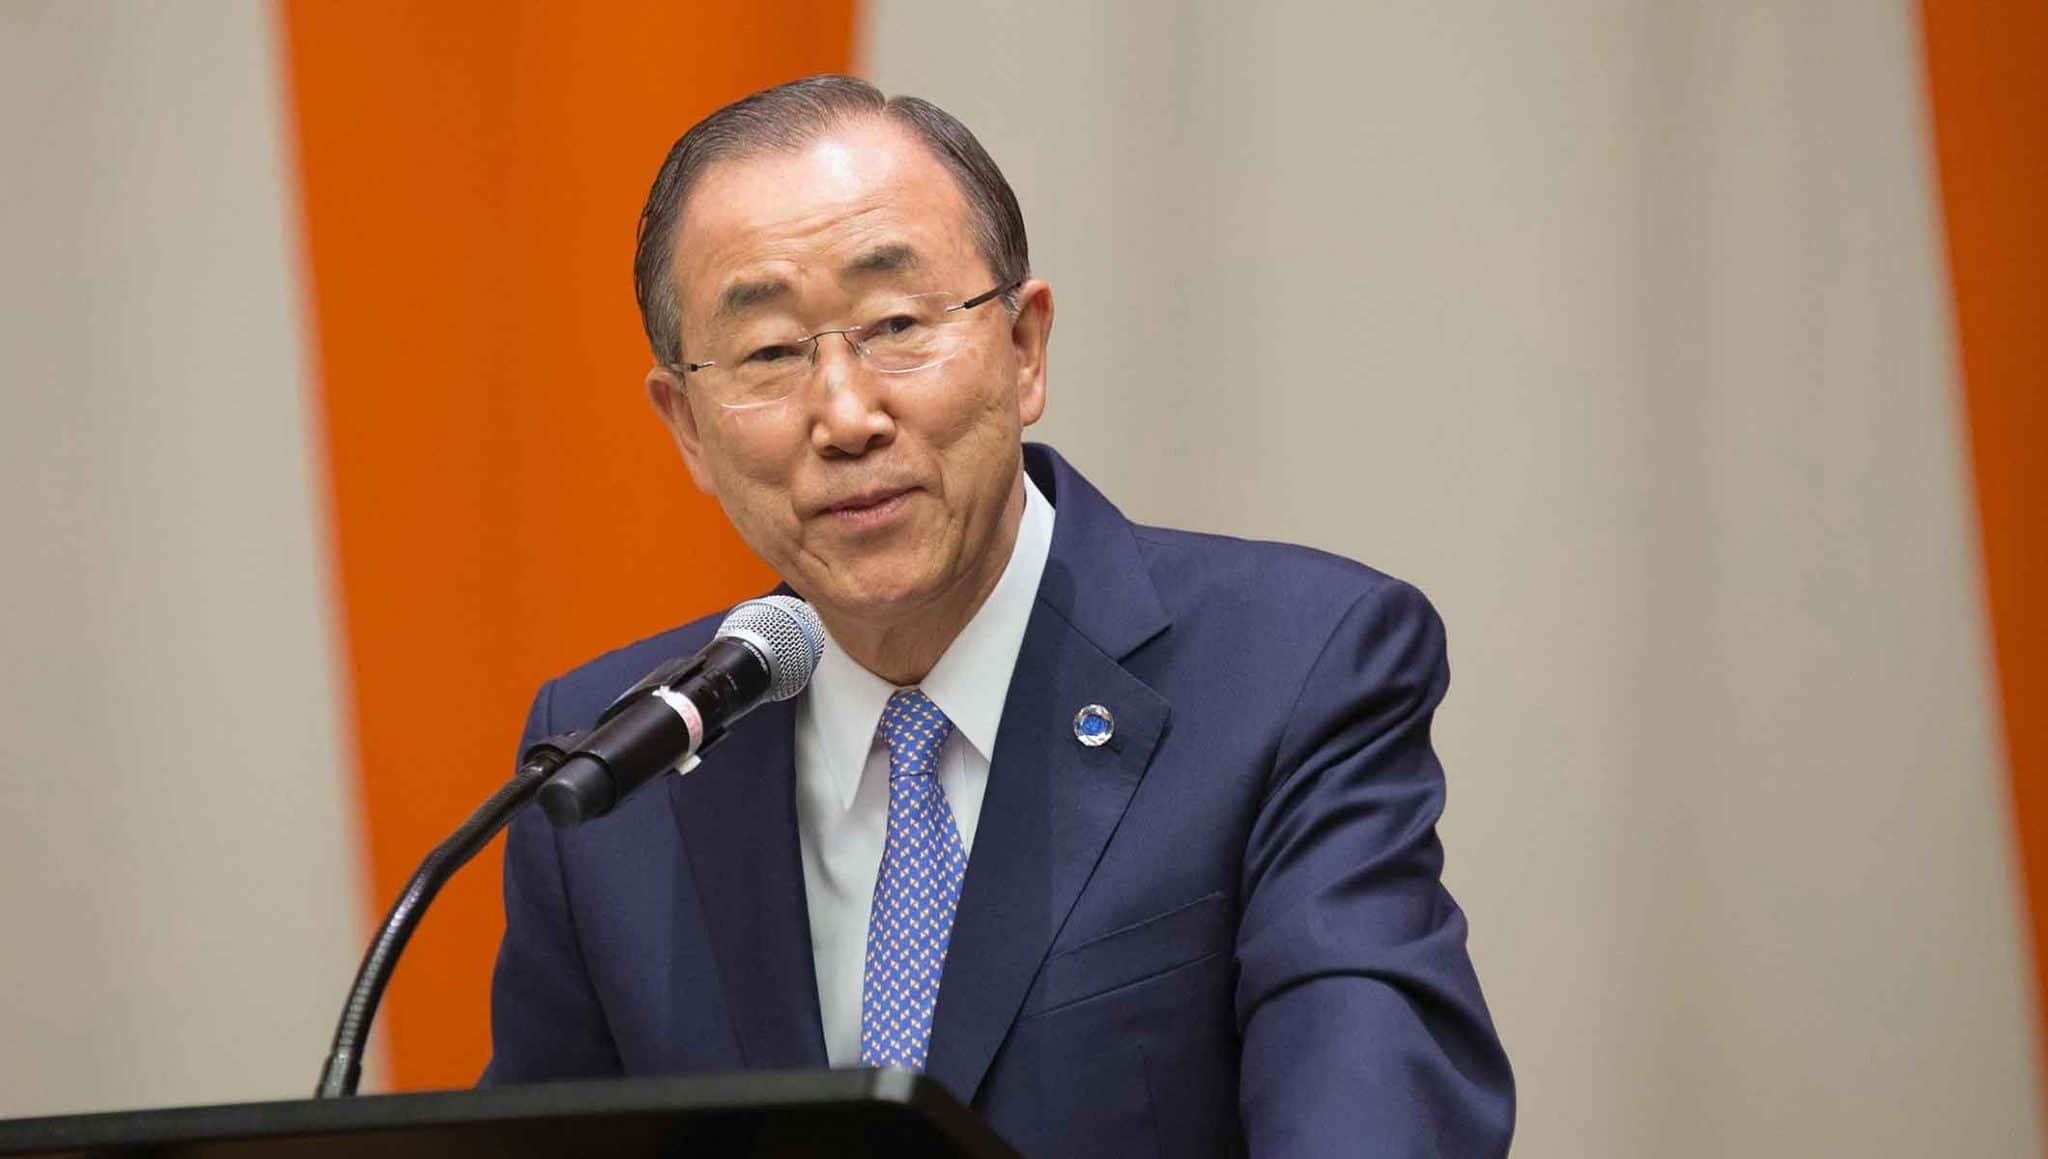 Former UN chief, Ban Ki-moon